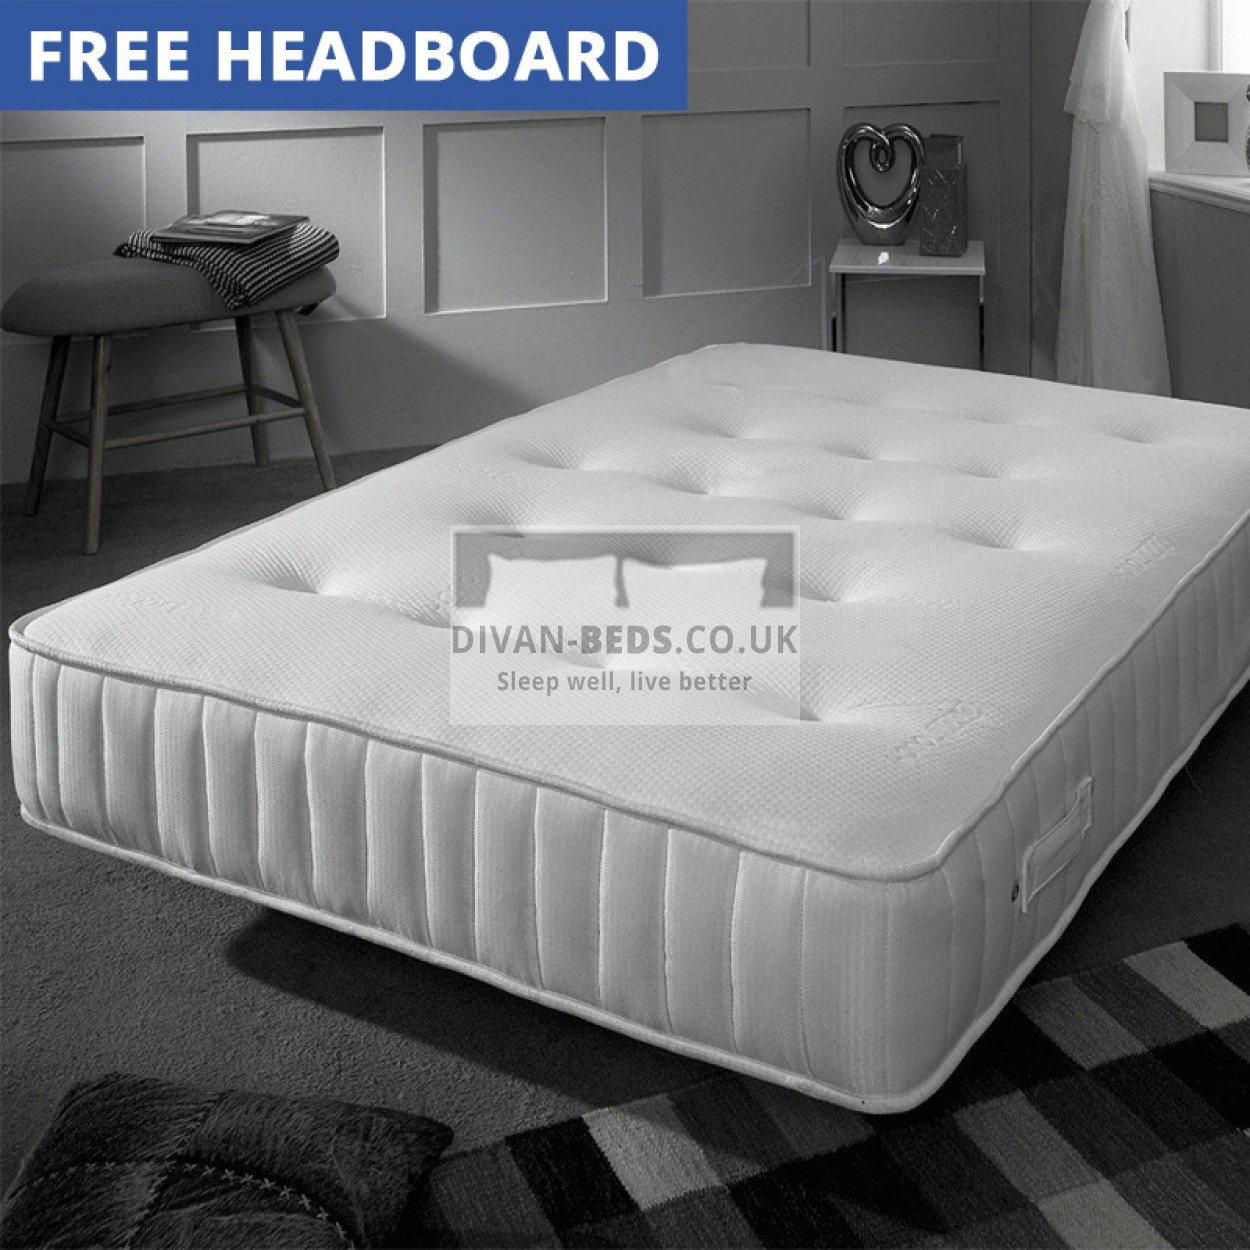 Hilliard leather divan bed with 2000 pocket spring for Divan bed with memory foam mattress